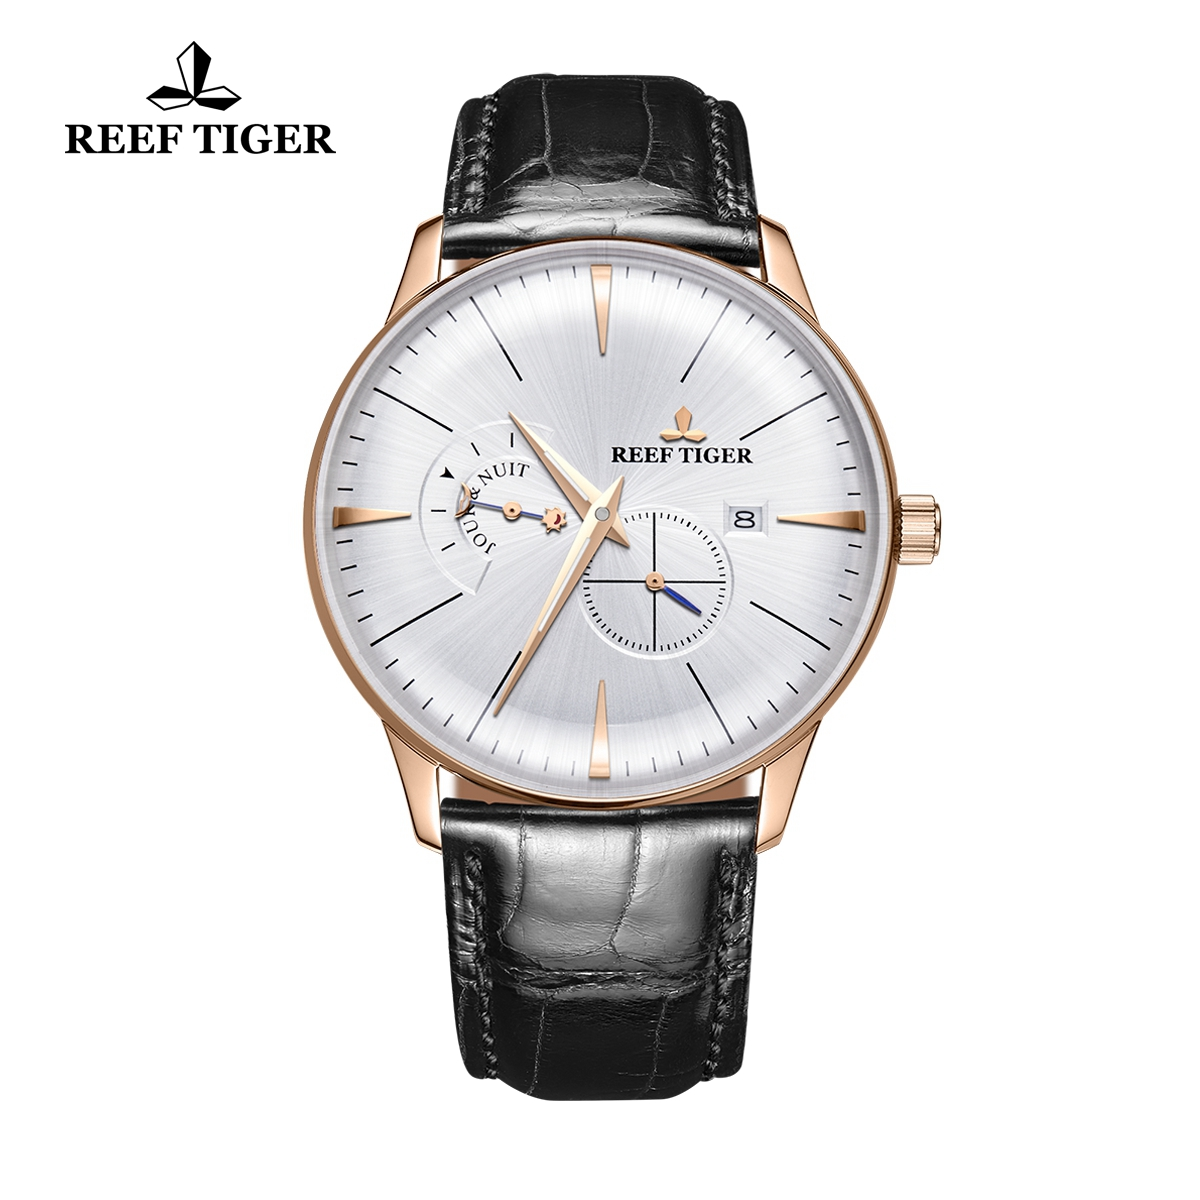 Reef Tiger Classic Artisan Men's Casual Watch White Dial Leather Strap Automatic Watches RGA8219-PWB